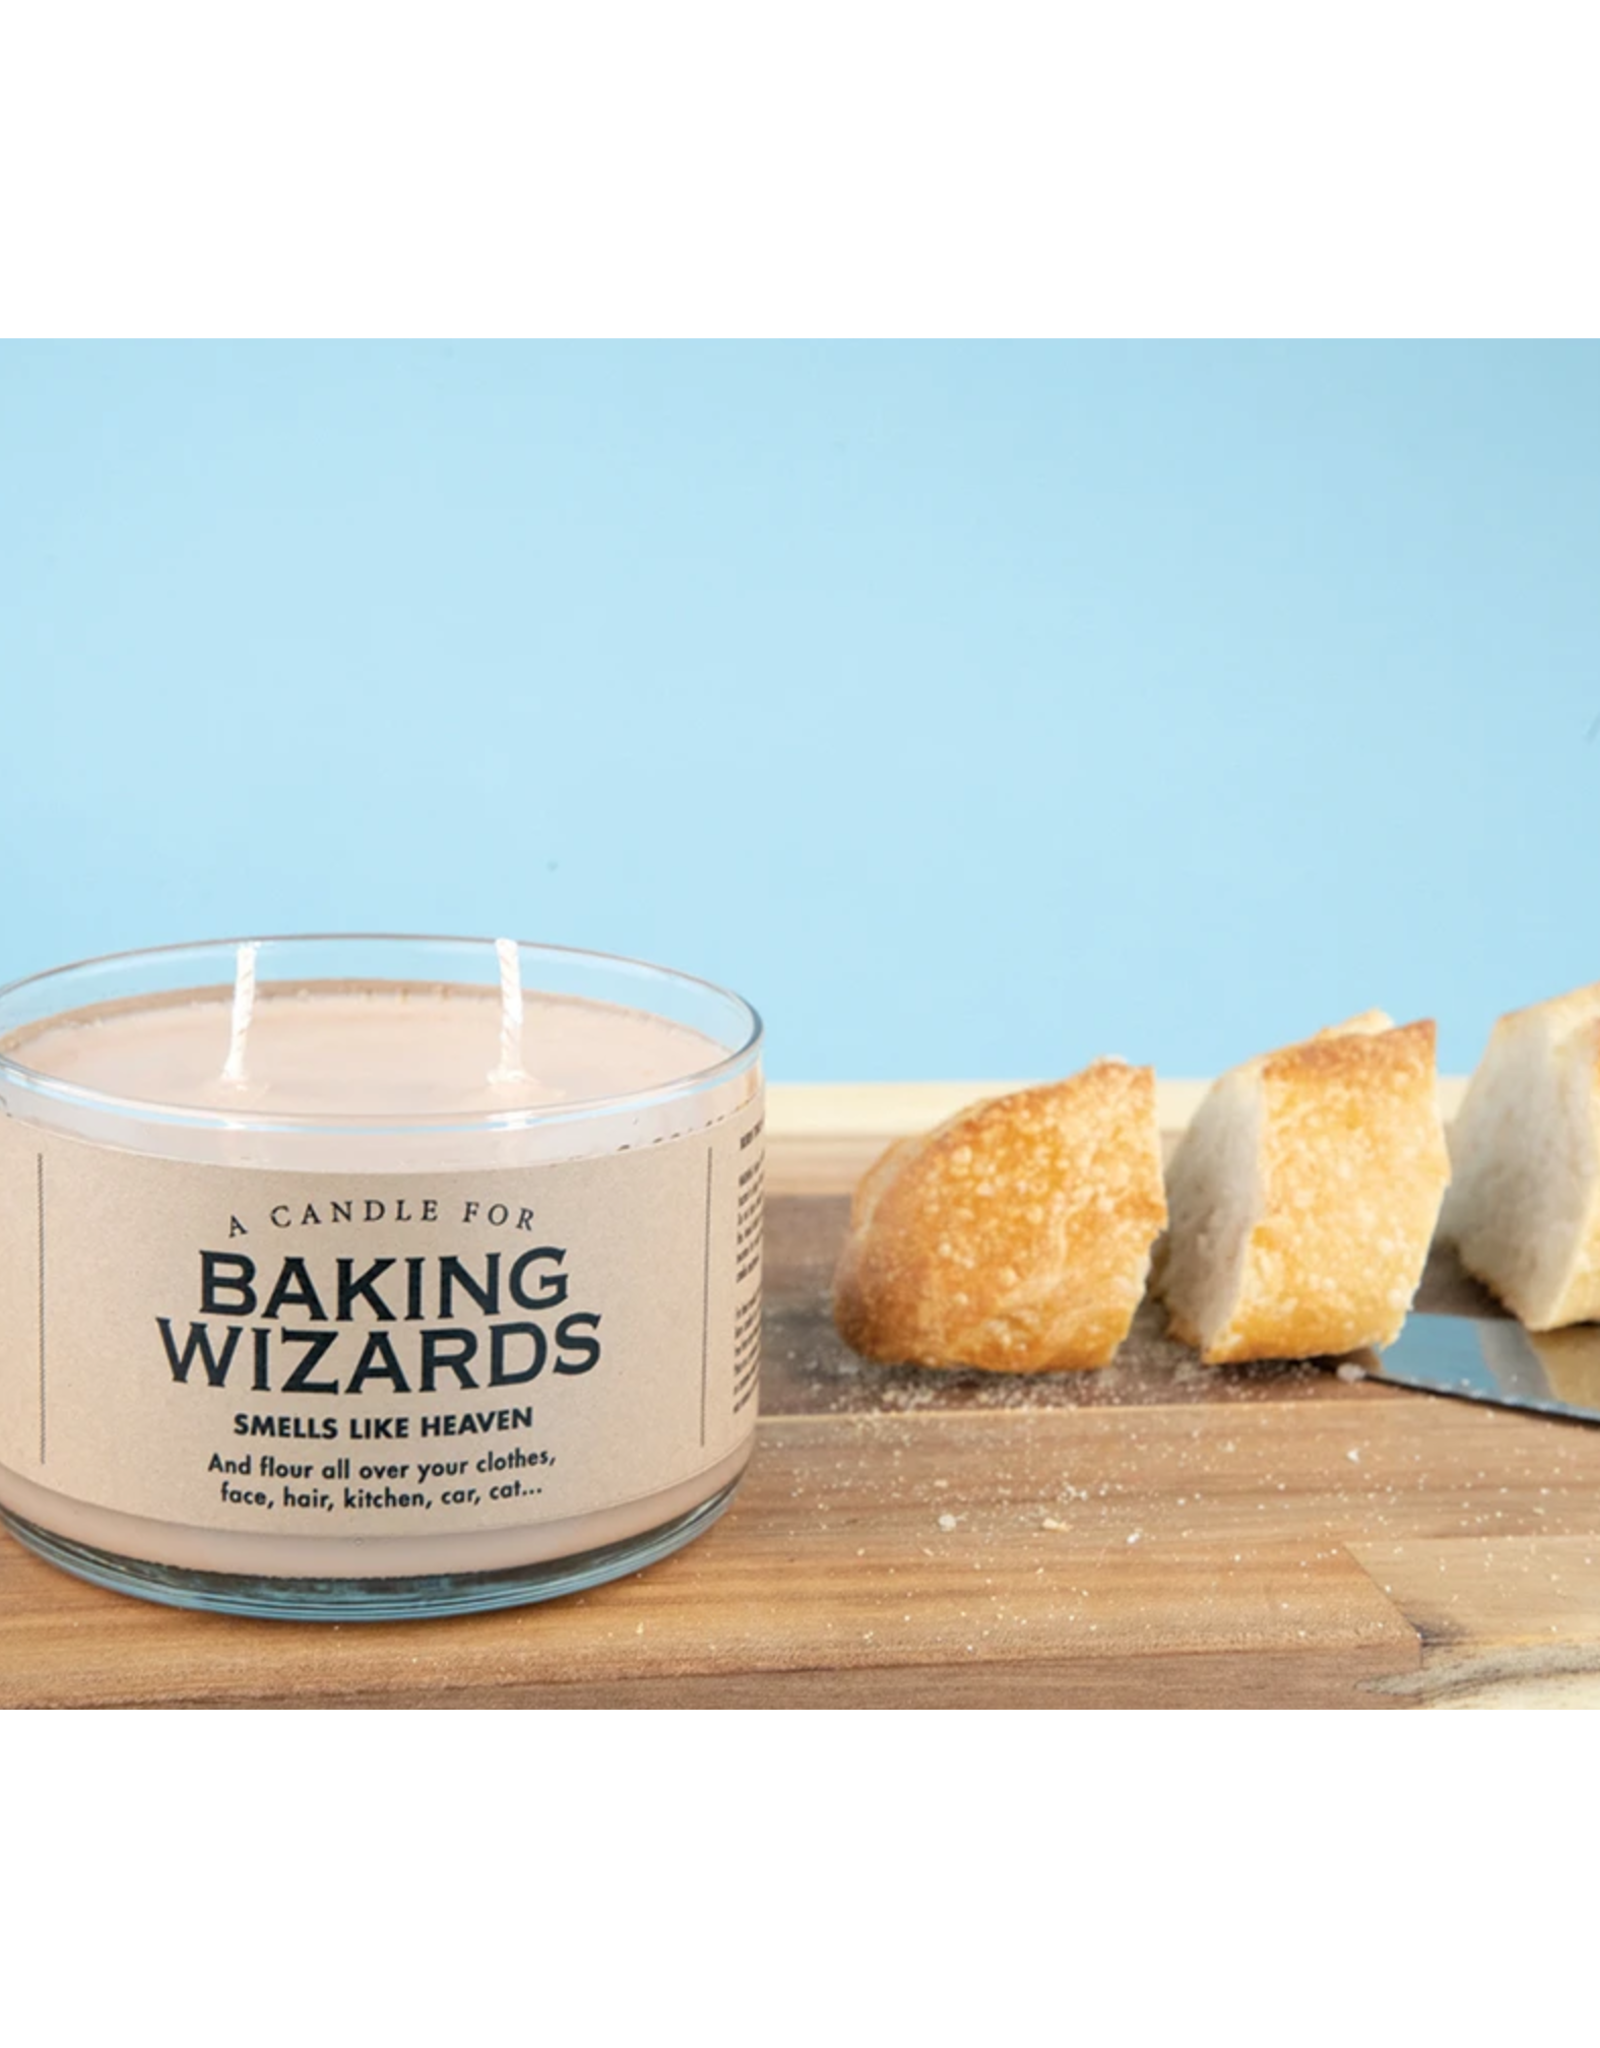 A Candle for Baking Wizards (Fresh Artisan Bread Scented)